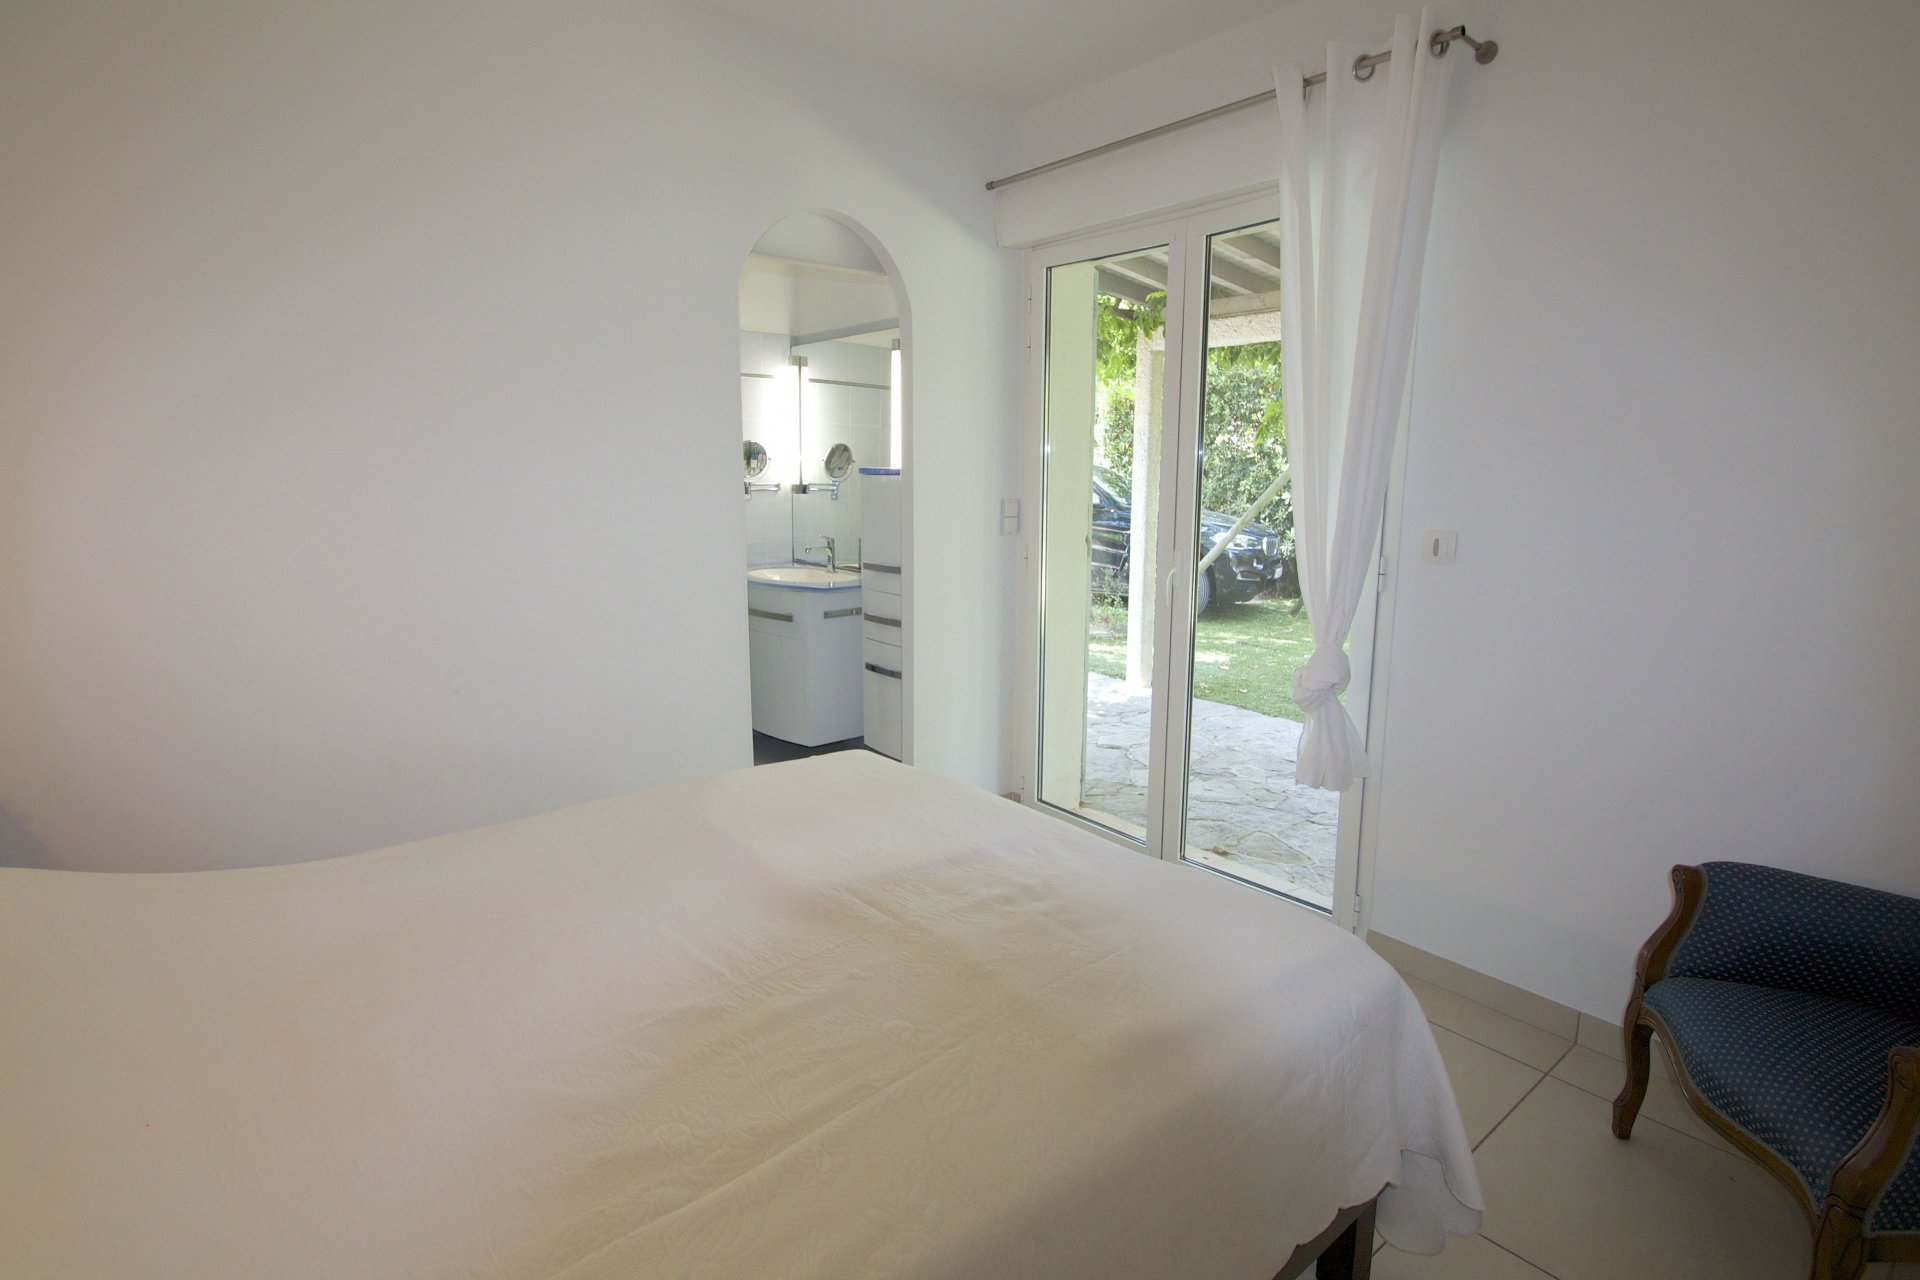 Ste. Maxime - Beautiful villa at 100 m from the beach of La Nartelle.